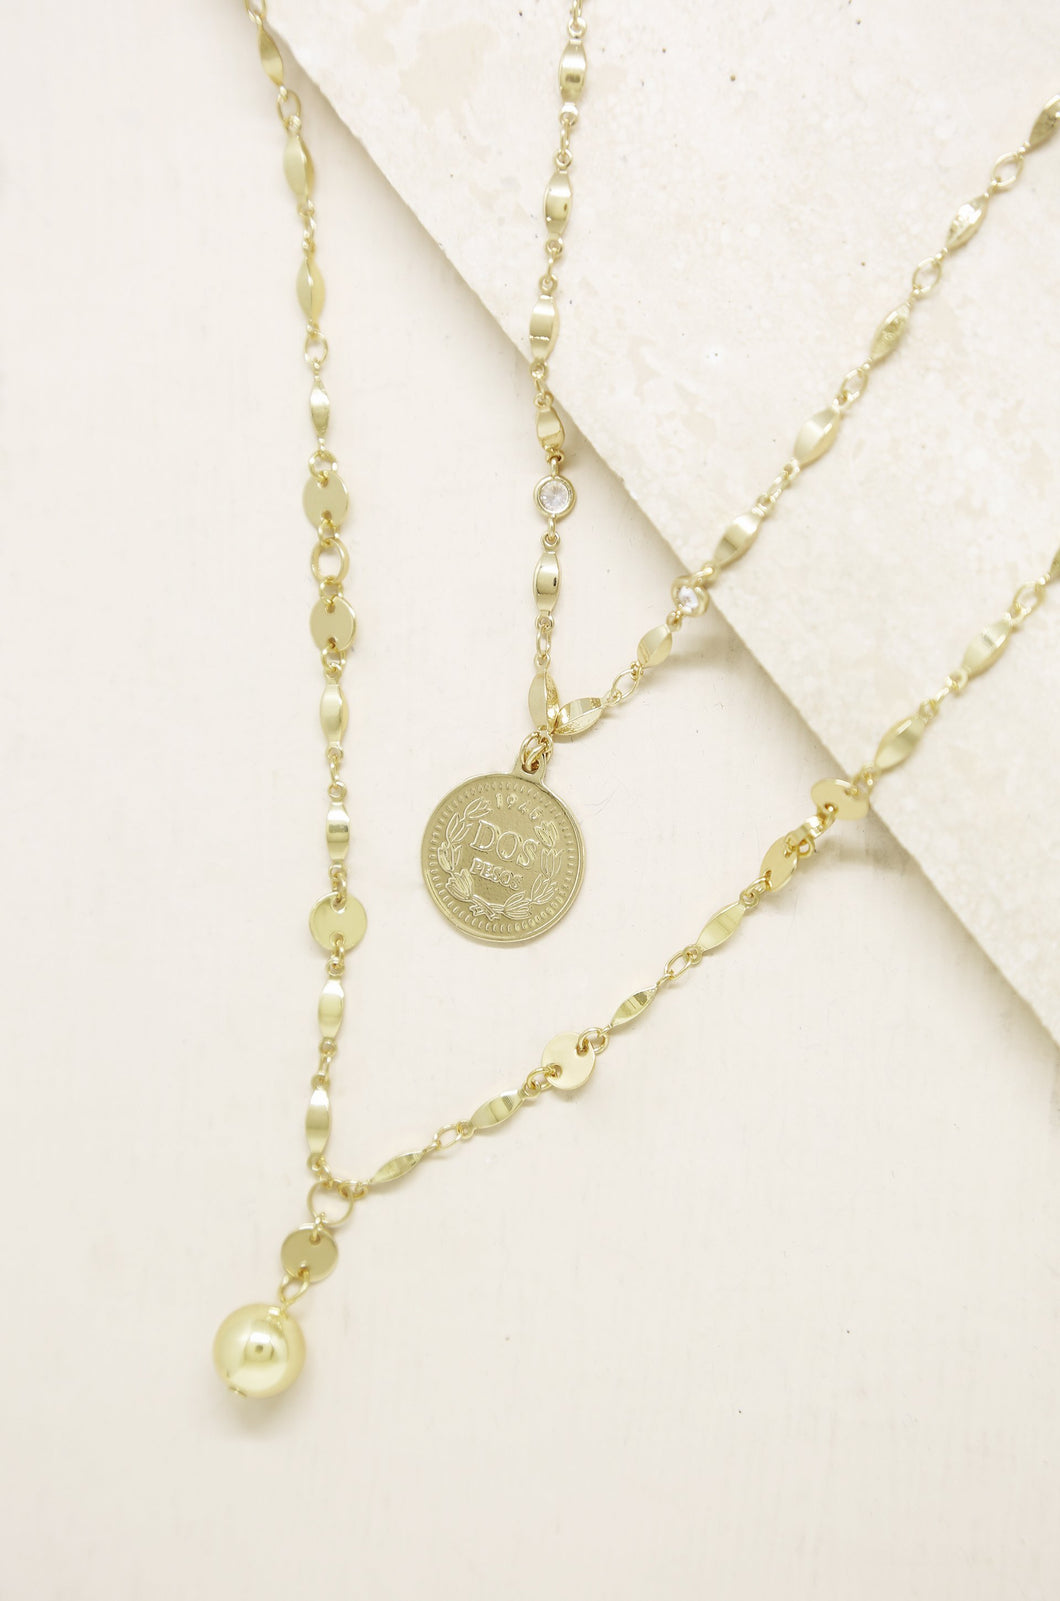 Ball and Chain 18k Gold Plated Coin Necklace Set - SteelJoy!